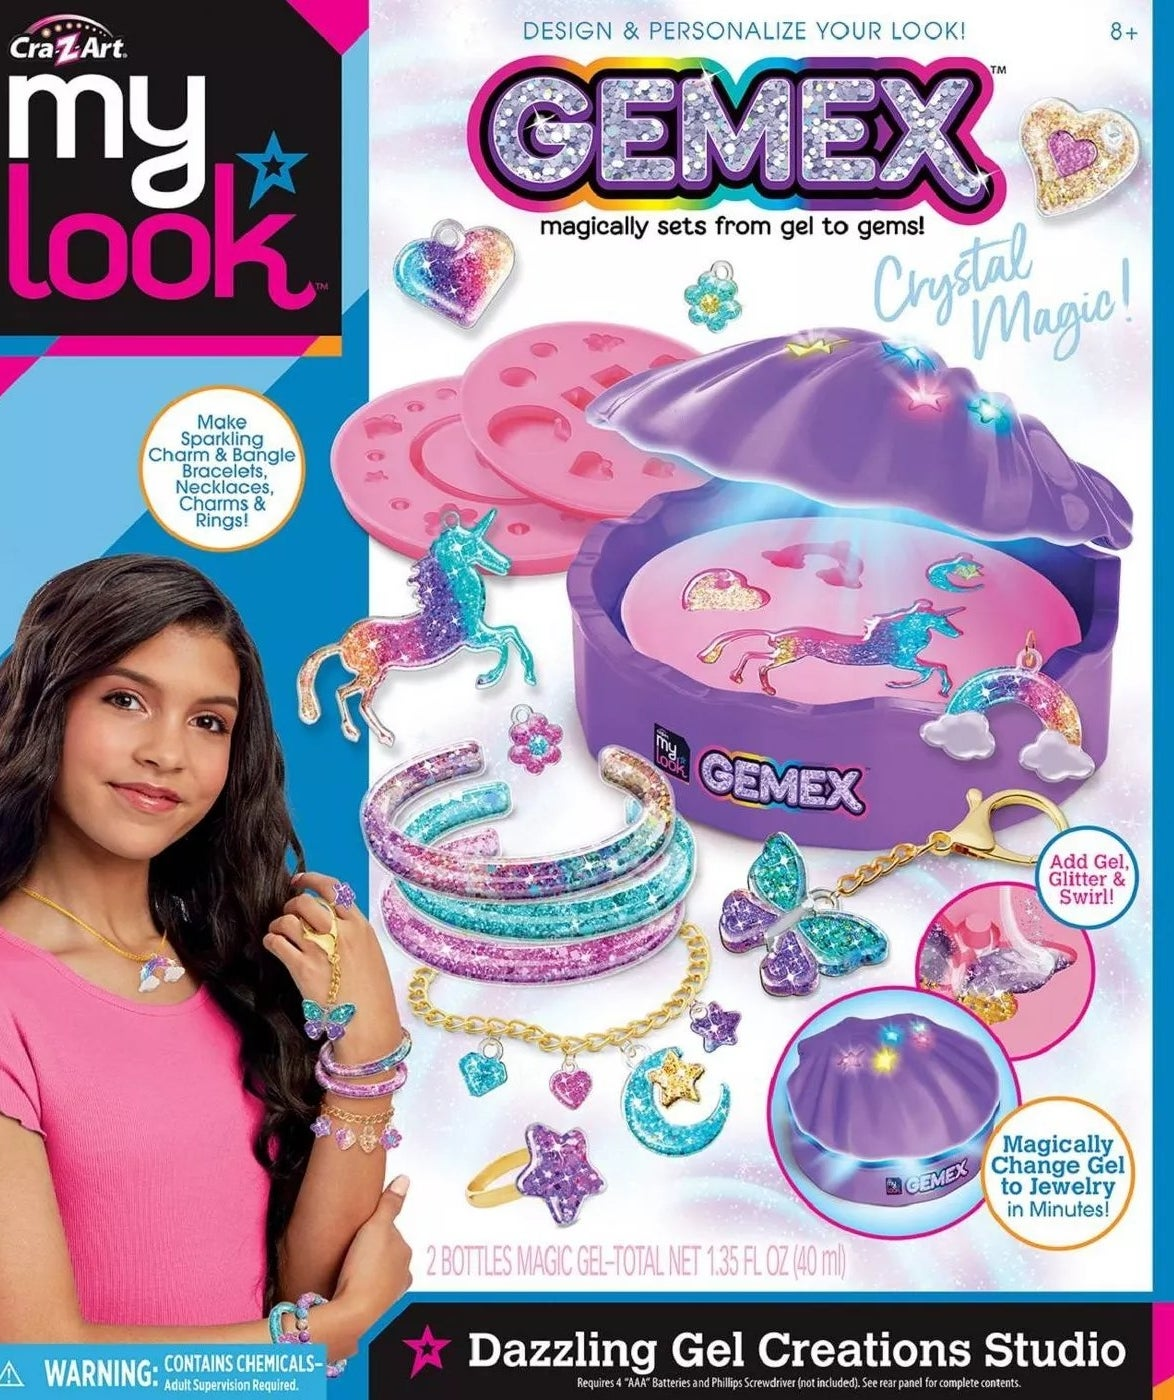 CraZ Art my look GEMEX dazzling gel creations studio that magically sets from gel to gems and includes two bottles of magic gel